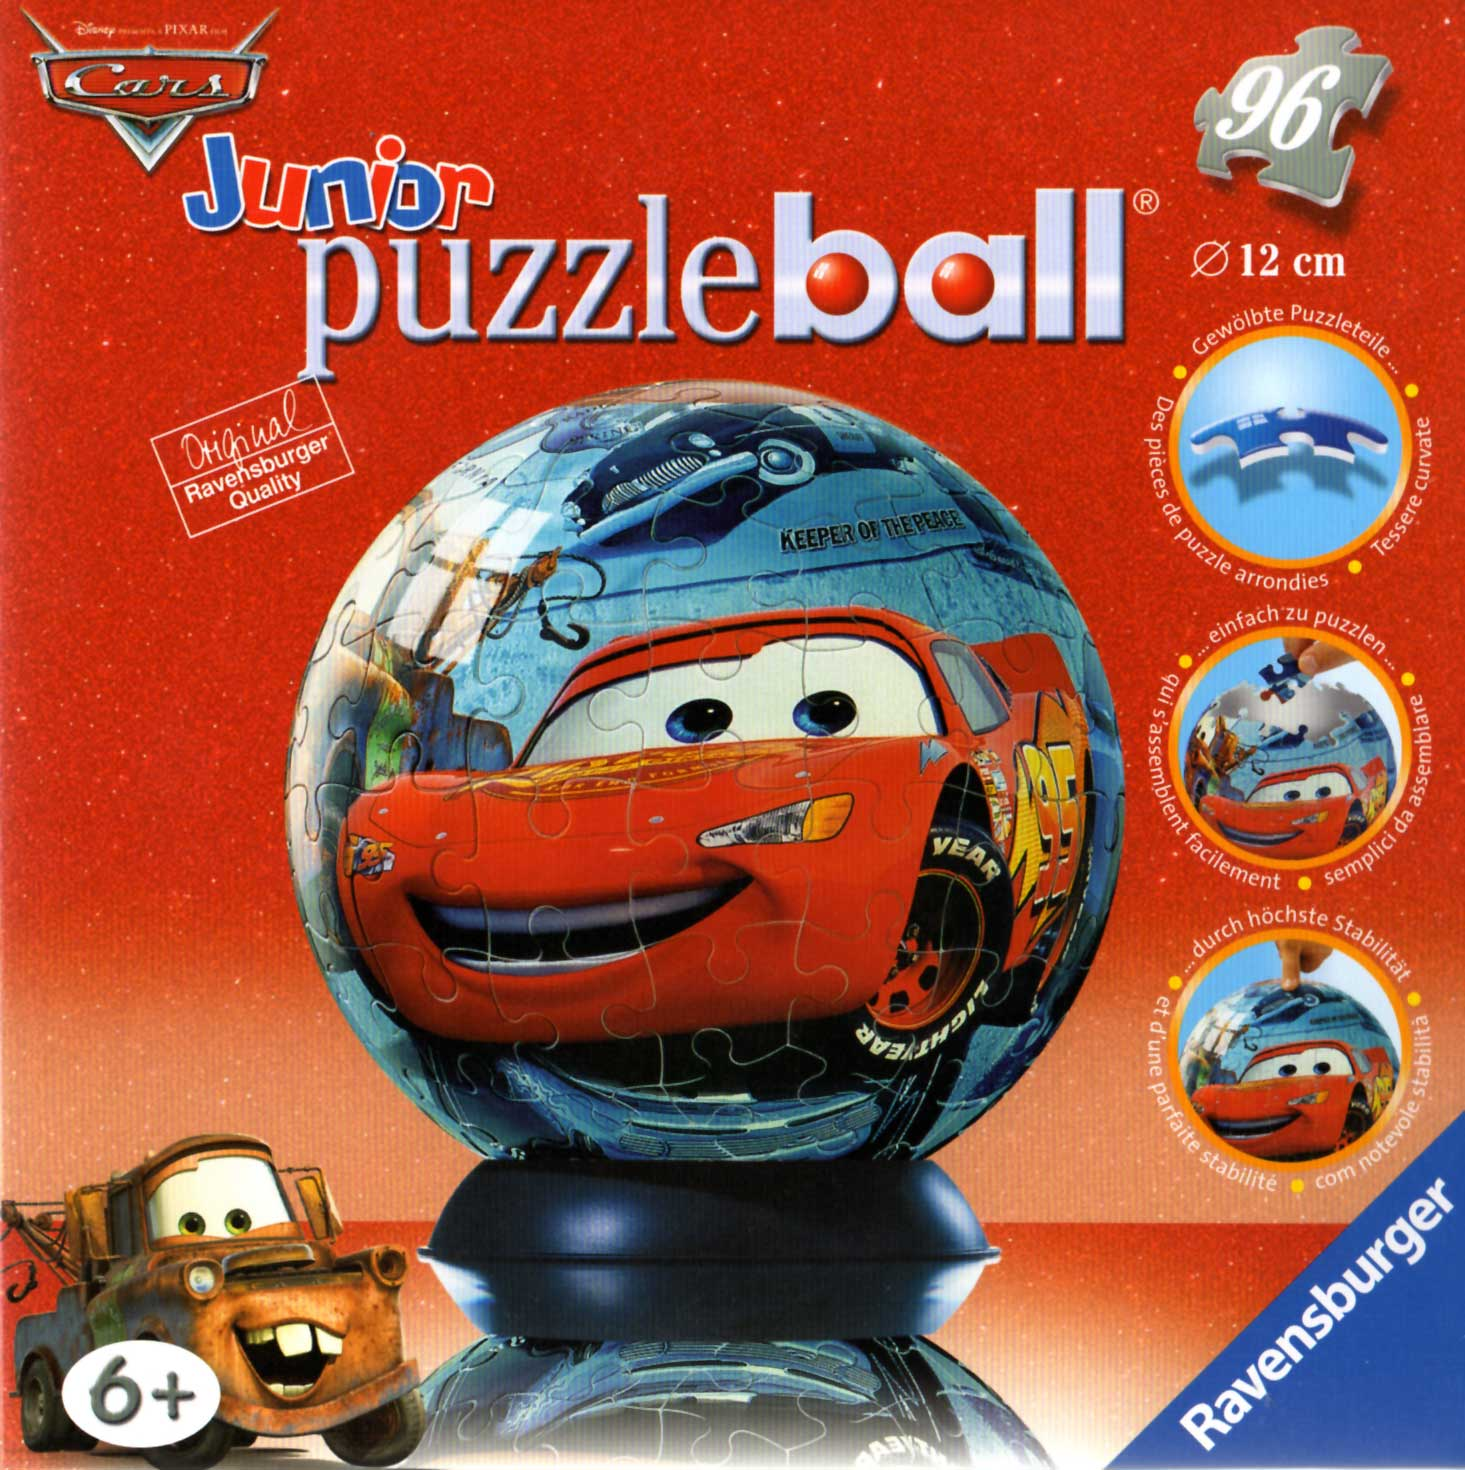 Packaging face Puzzle Ball Ravensburger de 96 pièces (Cars - 2005)